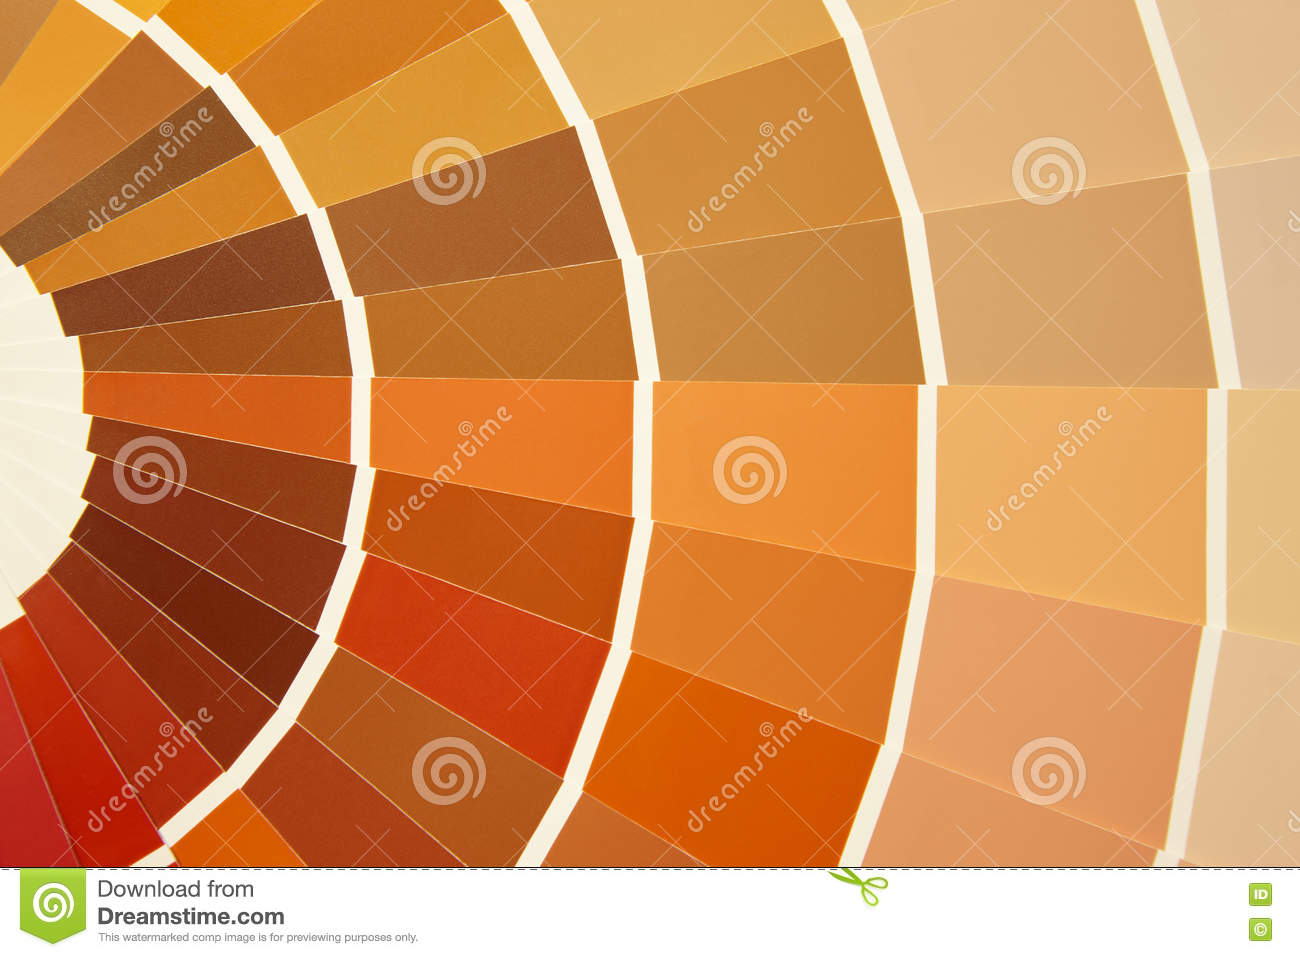 Card color palette in warm tones. Yellow orange brown